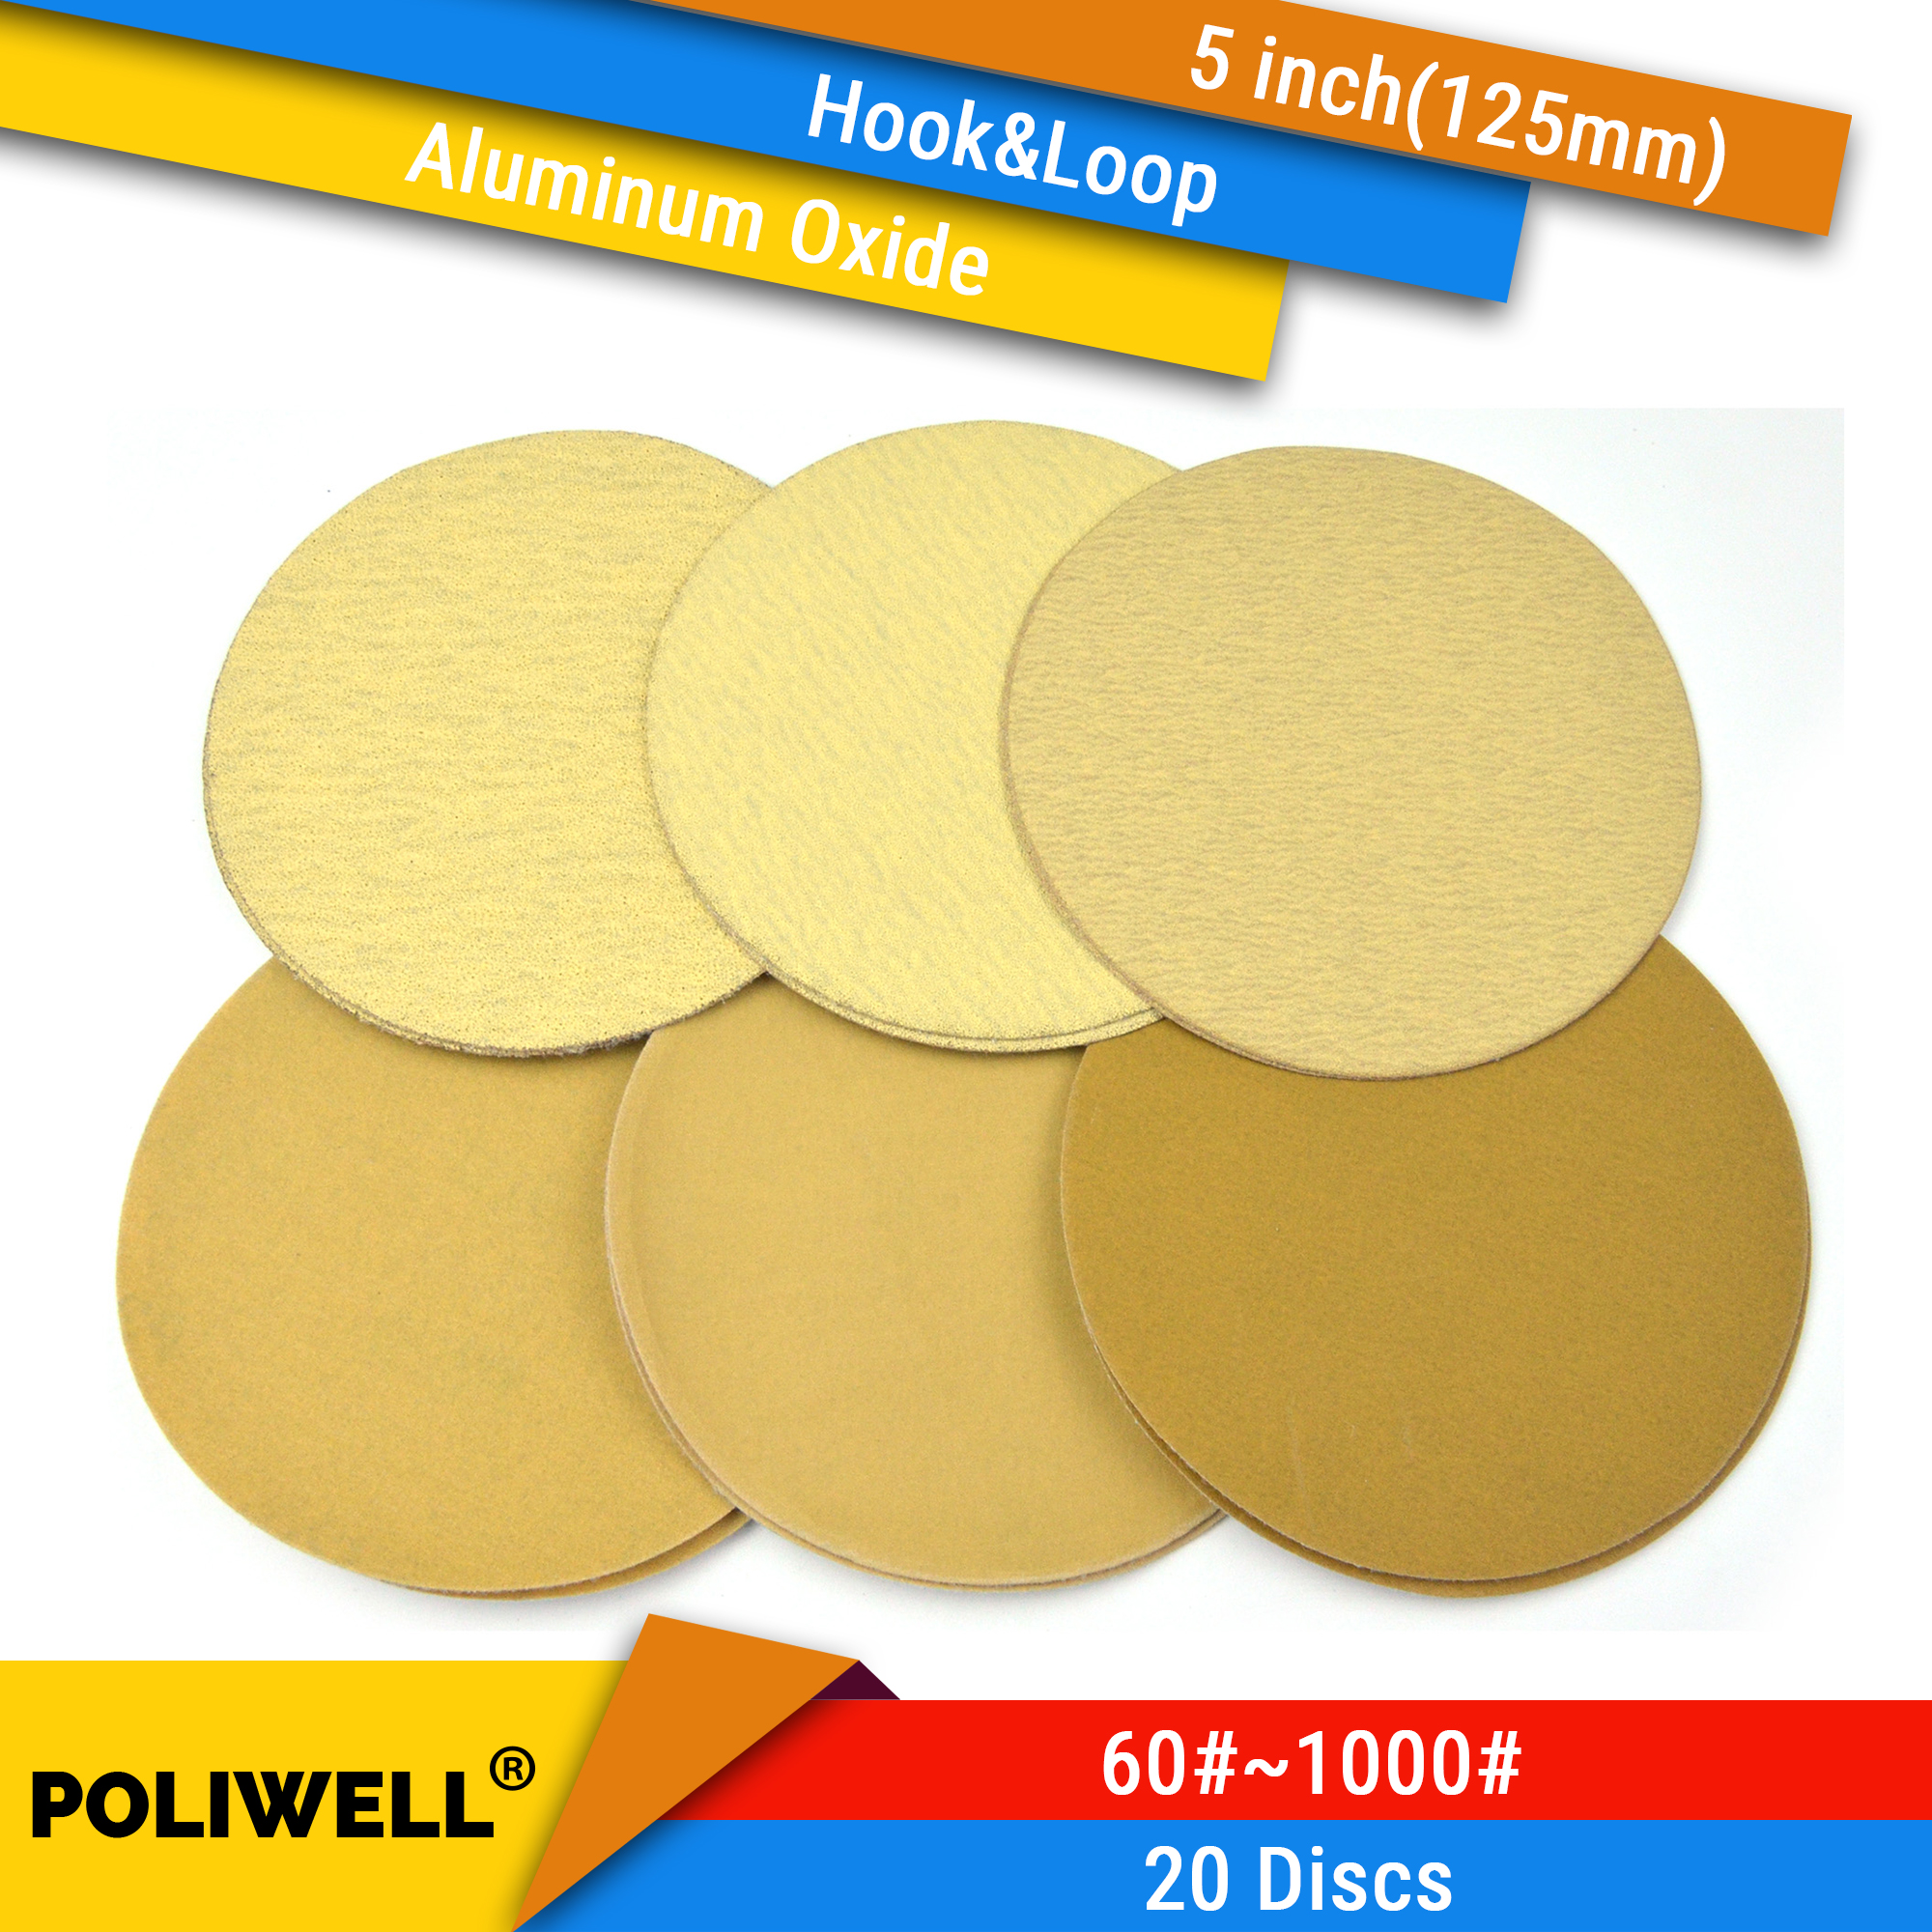 20PCS 5 Inch 125mm Polishing Paper Hook And Loop Yellow Sanding Discs Flocking Sandpaper For Car Polisher Paper 60/400/1000 Grit